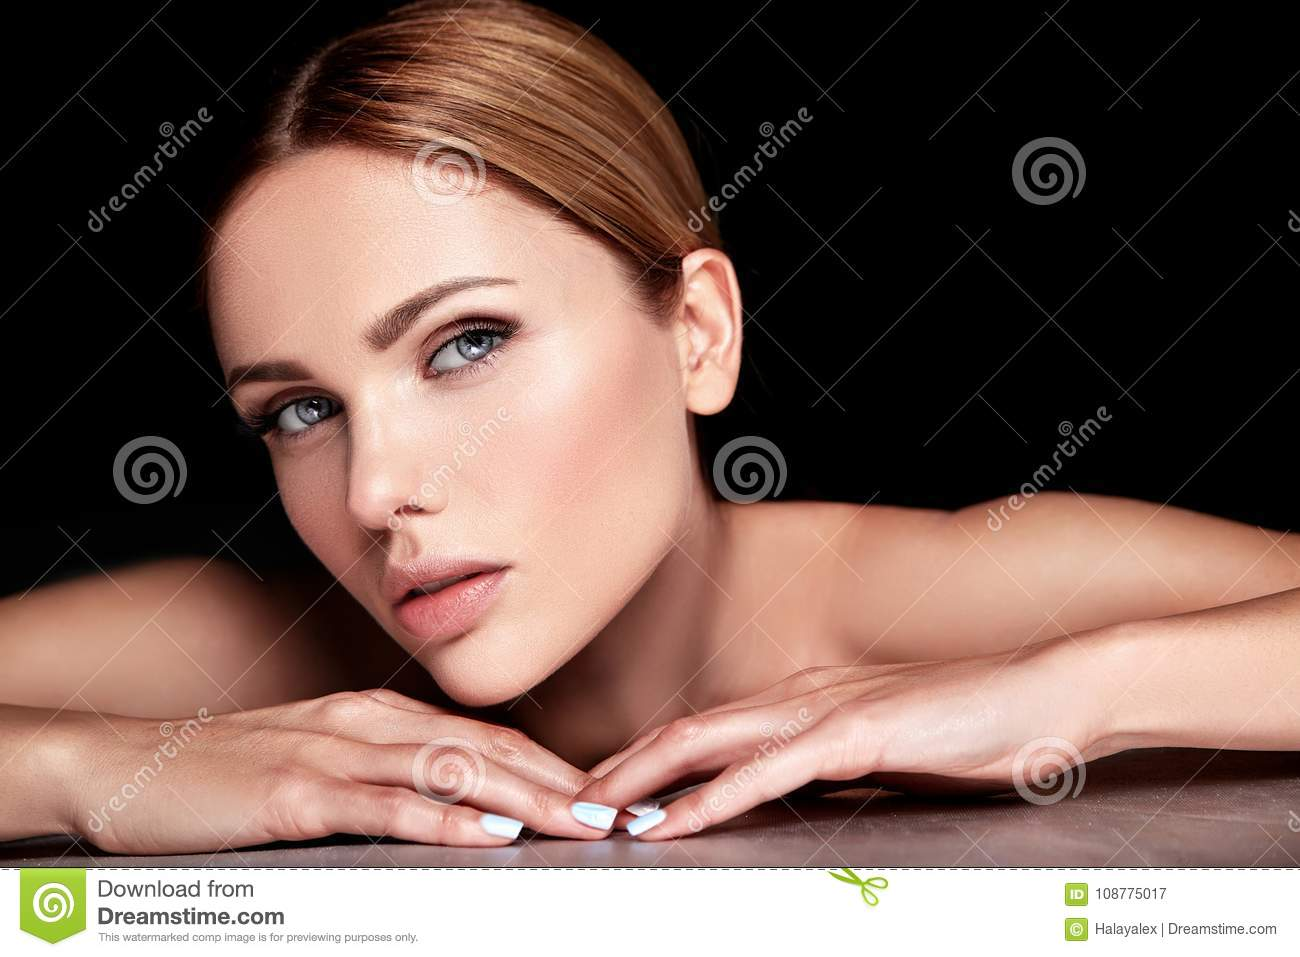 Model with no makeup and clean healthy skin face on black background